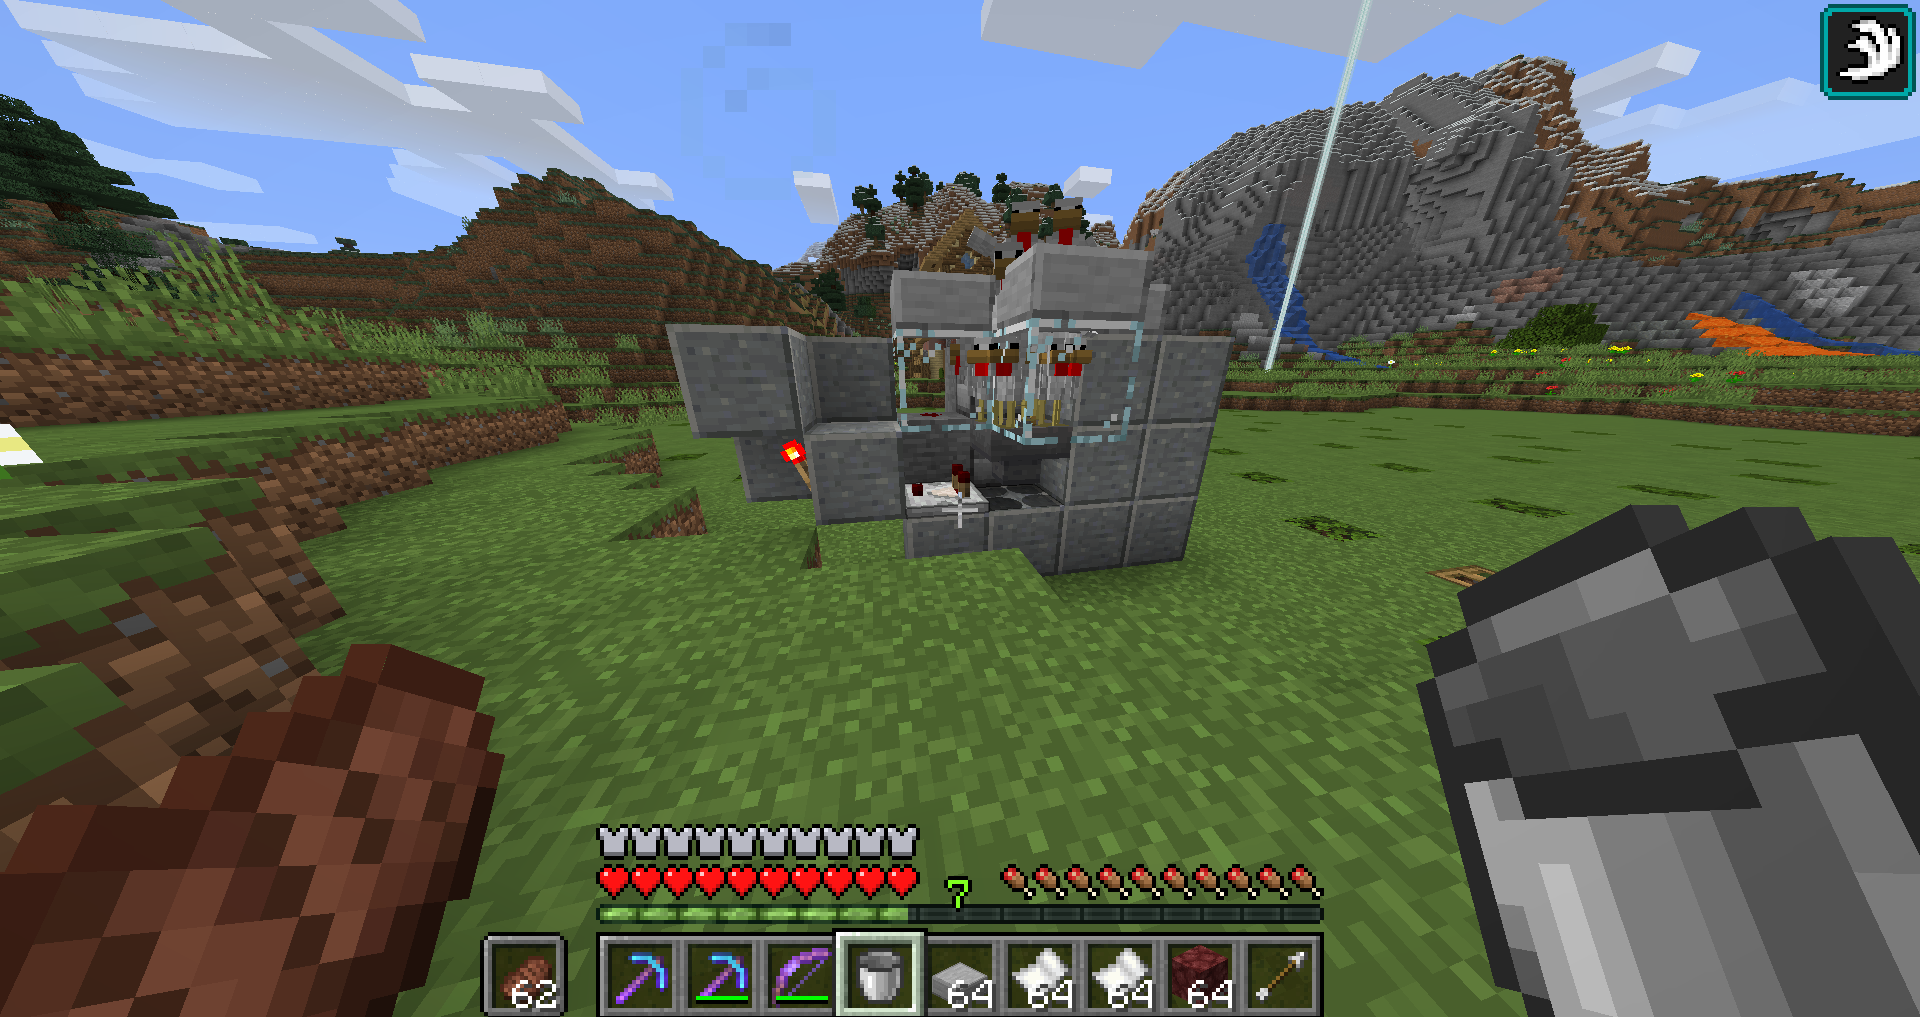 Chicken farms in 1 13 2 - Survival Mode - Minecraft: Java Edition